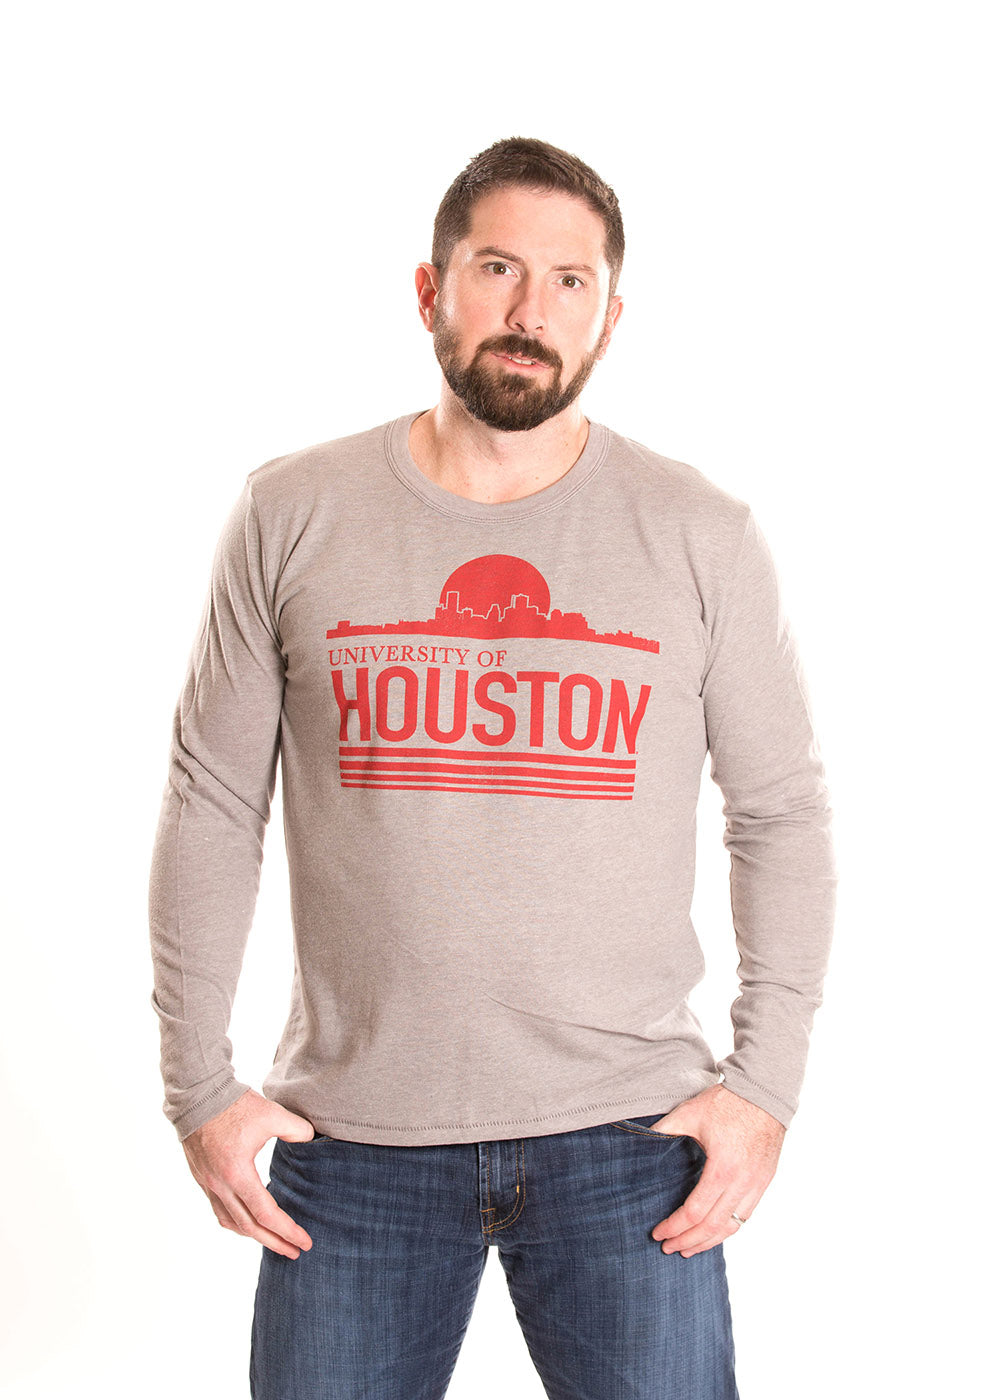 UNIVERSITY OF HOUSTON Cougars Men's Long Sleeve Tee